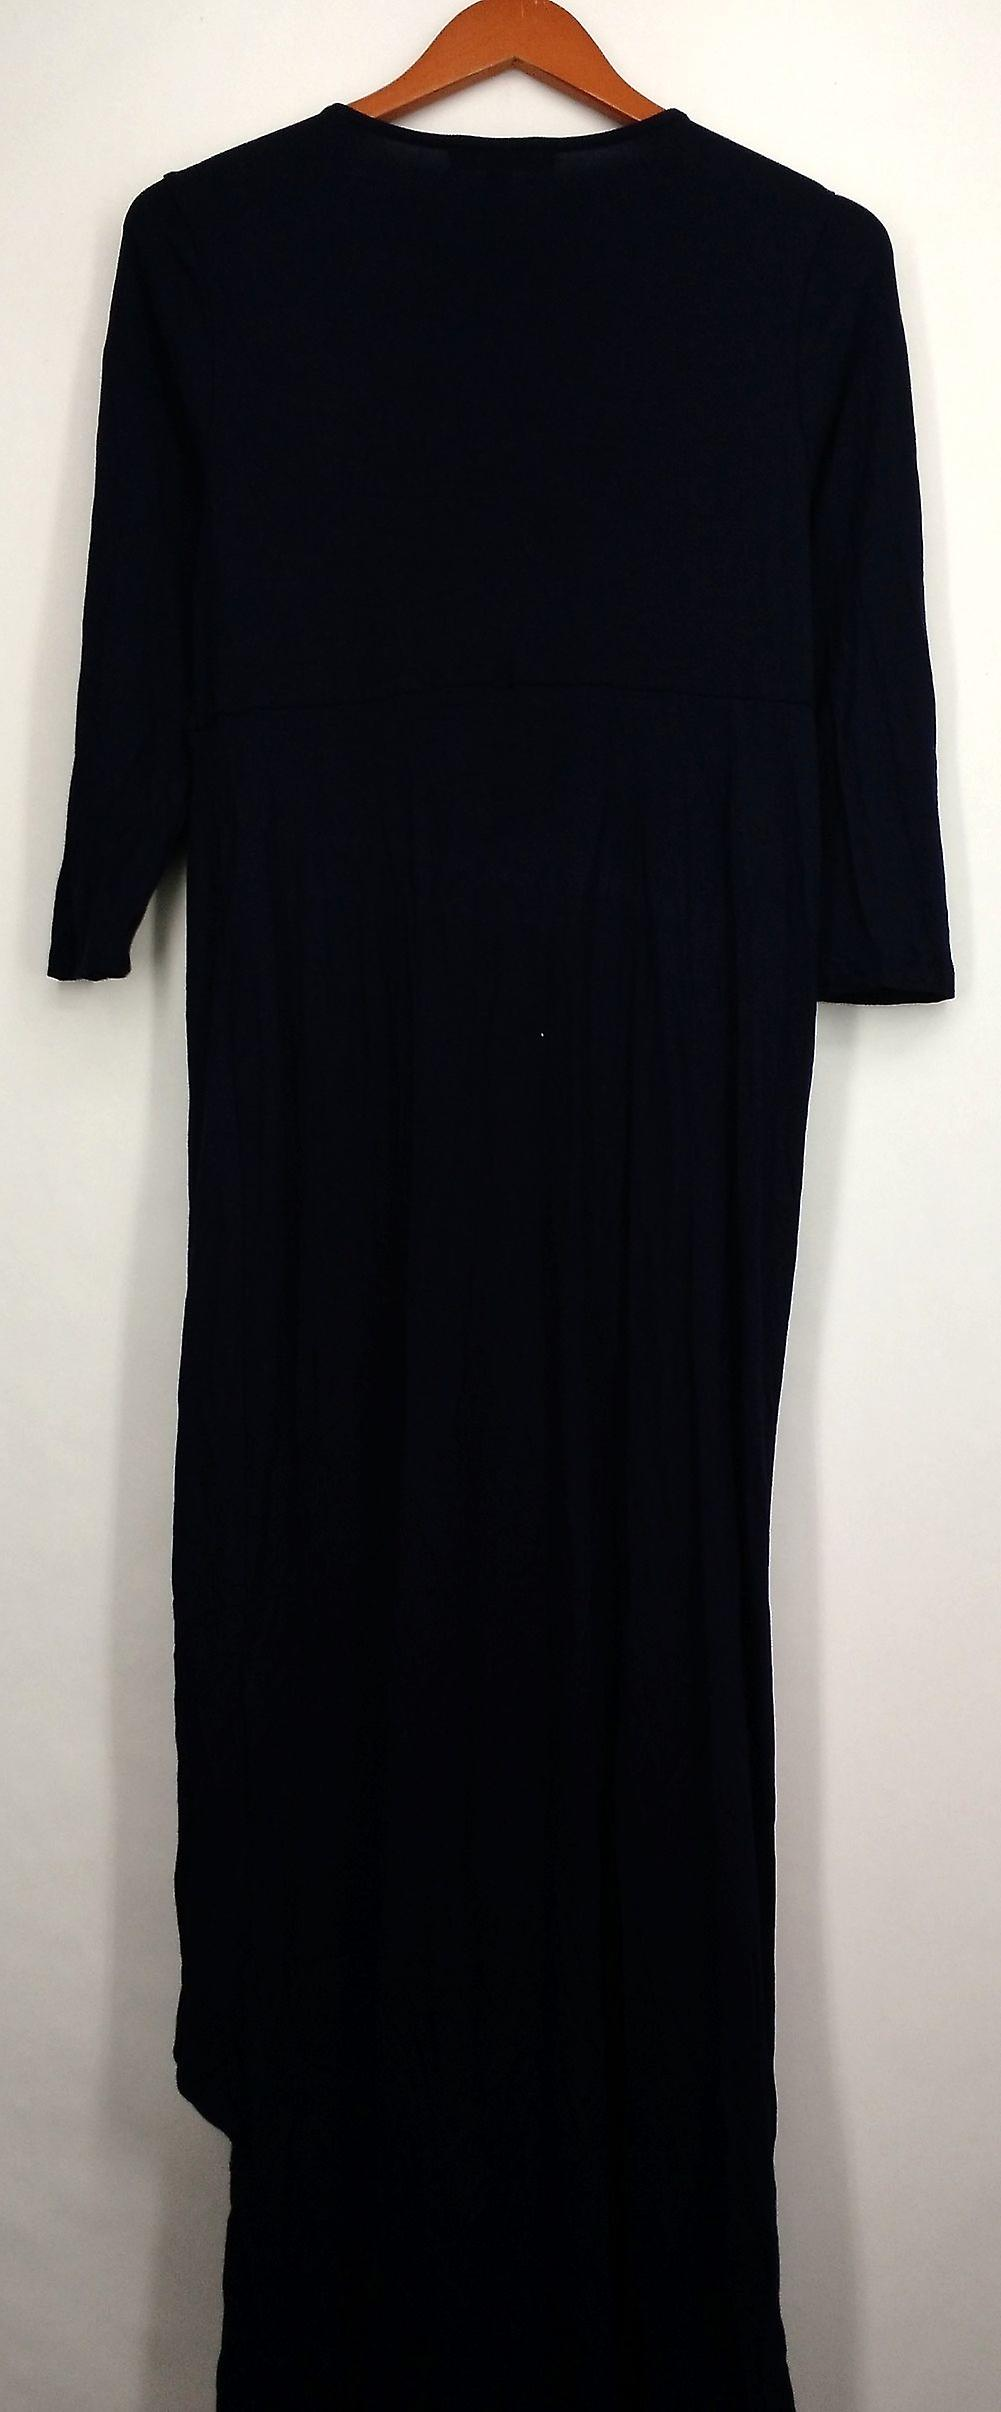 Kate & Mallory Dress 3/4 Sleeve w/ Twist Front Center Navy Blue A428763